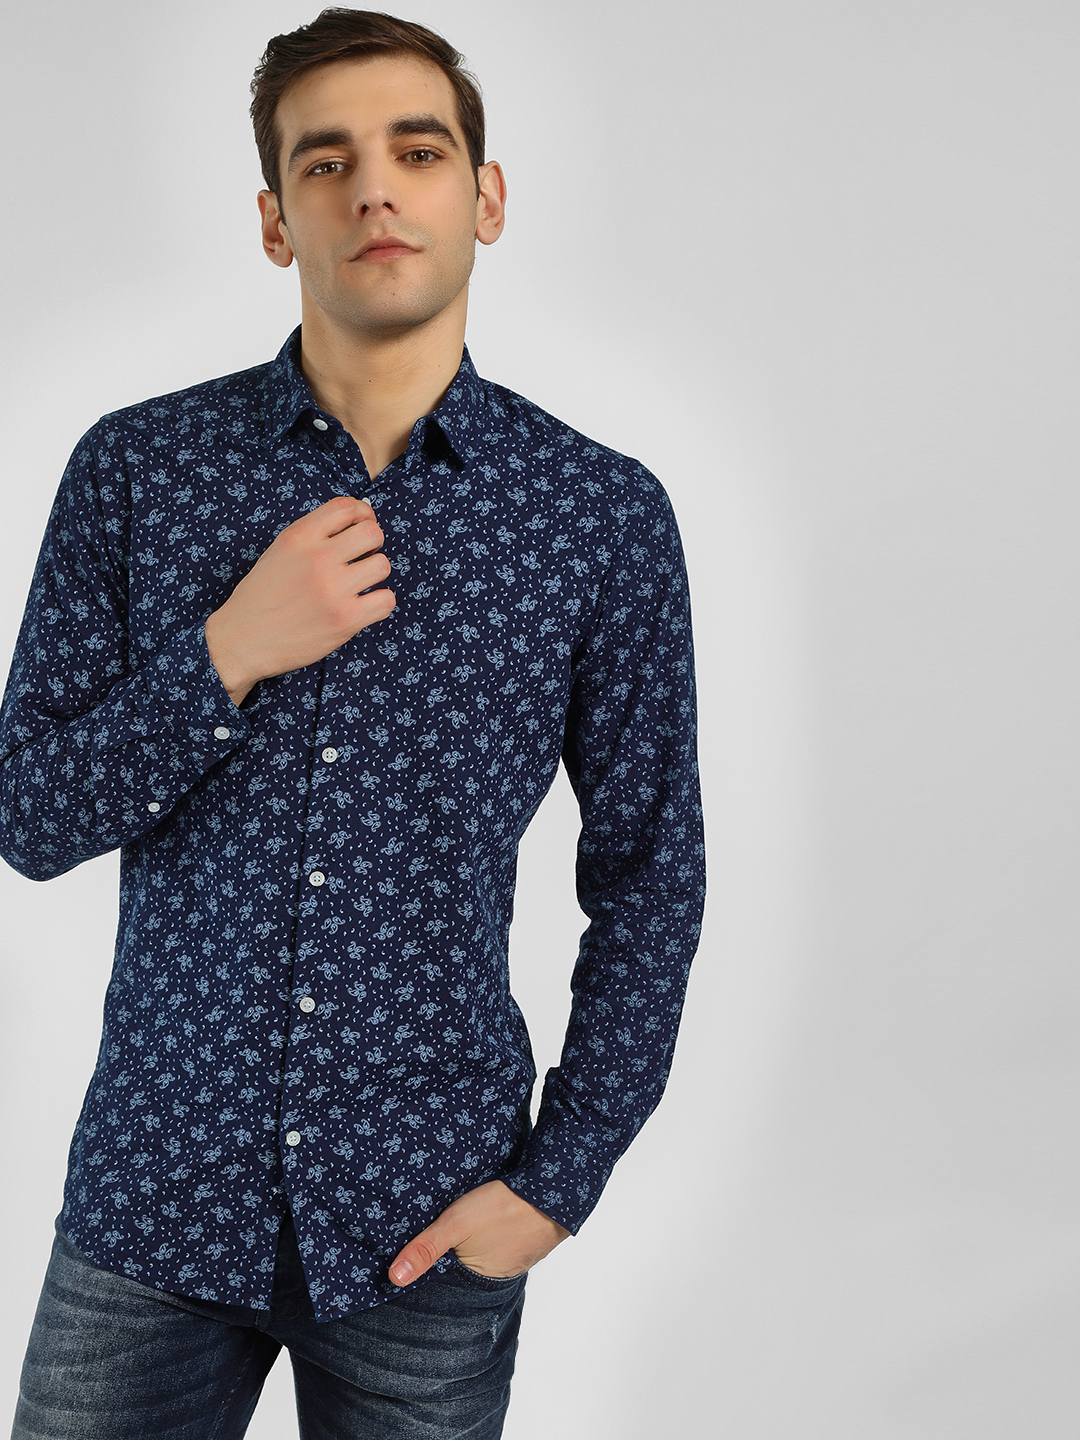 Adamo London Blue Paisley Print Casual Shirt 1